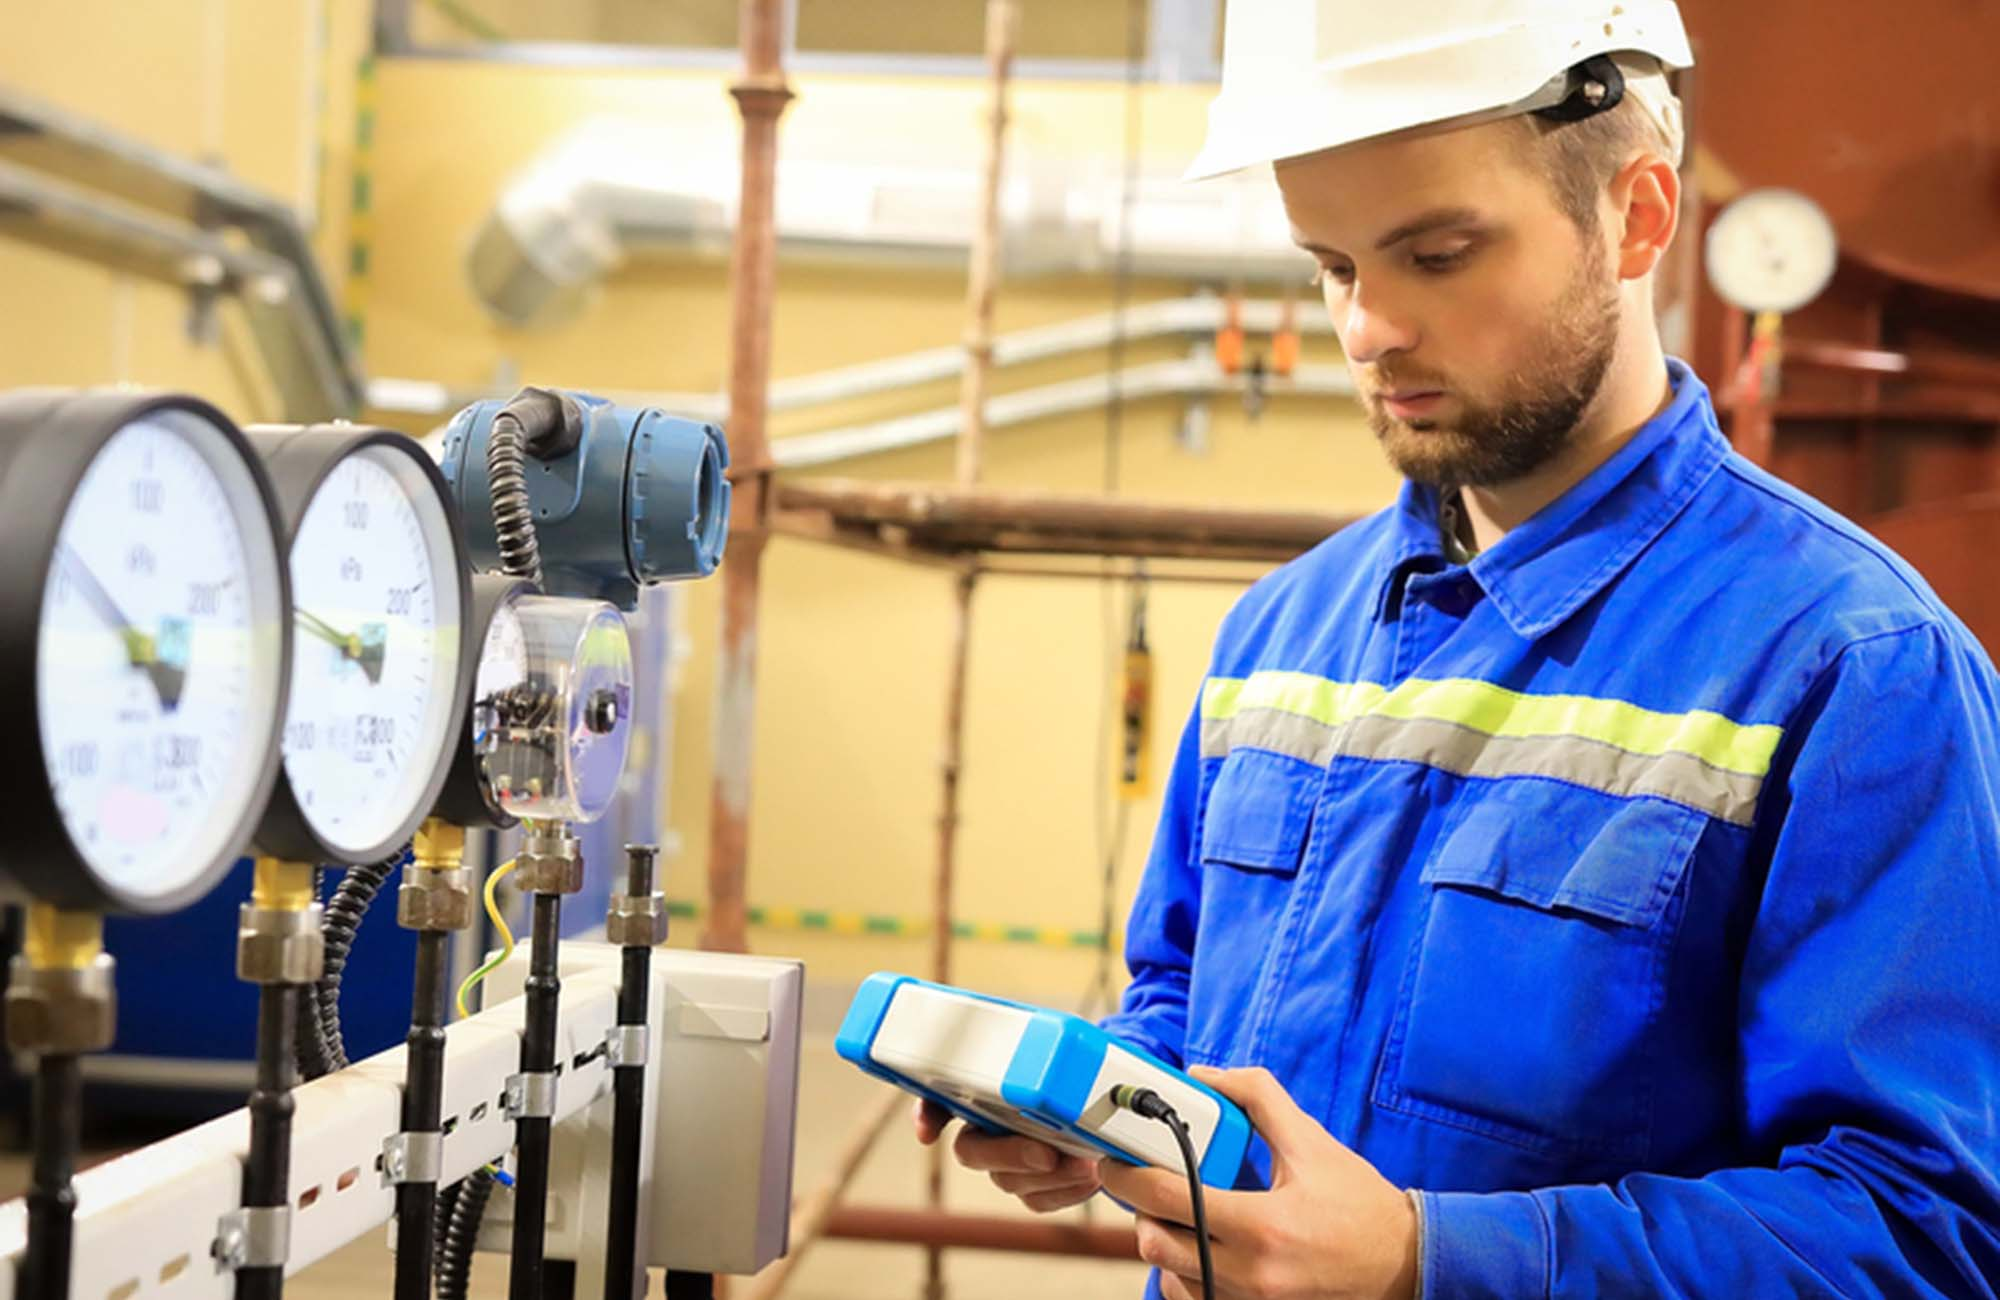 Maintenance engineer controls a work technological process and